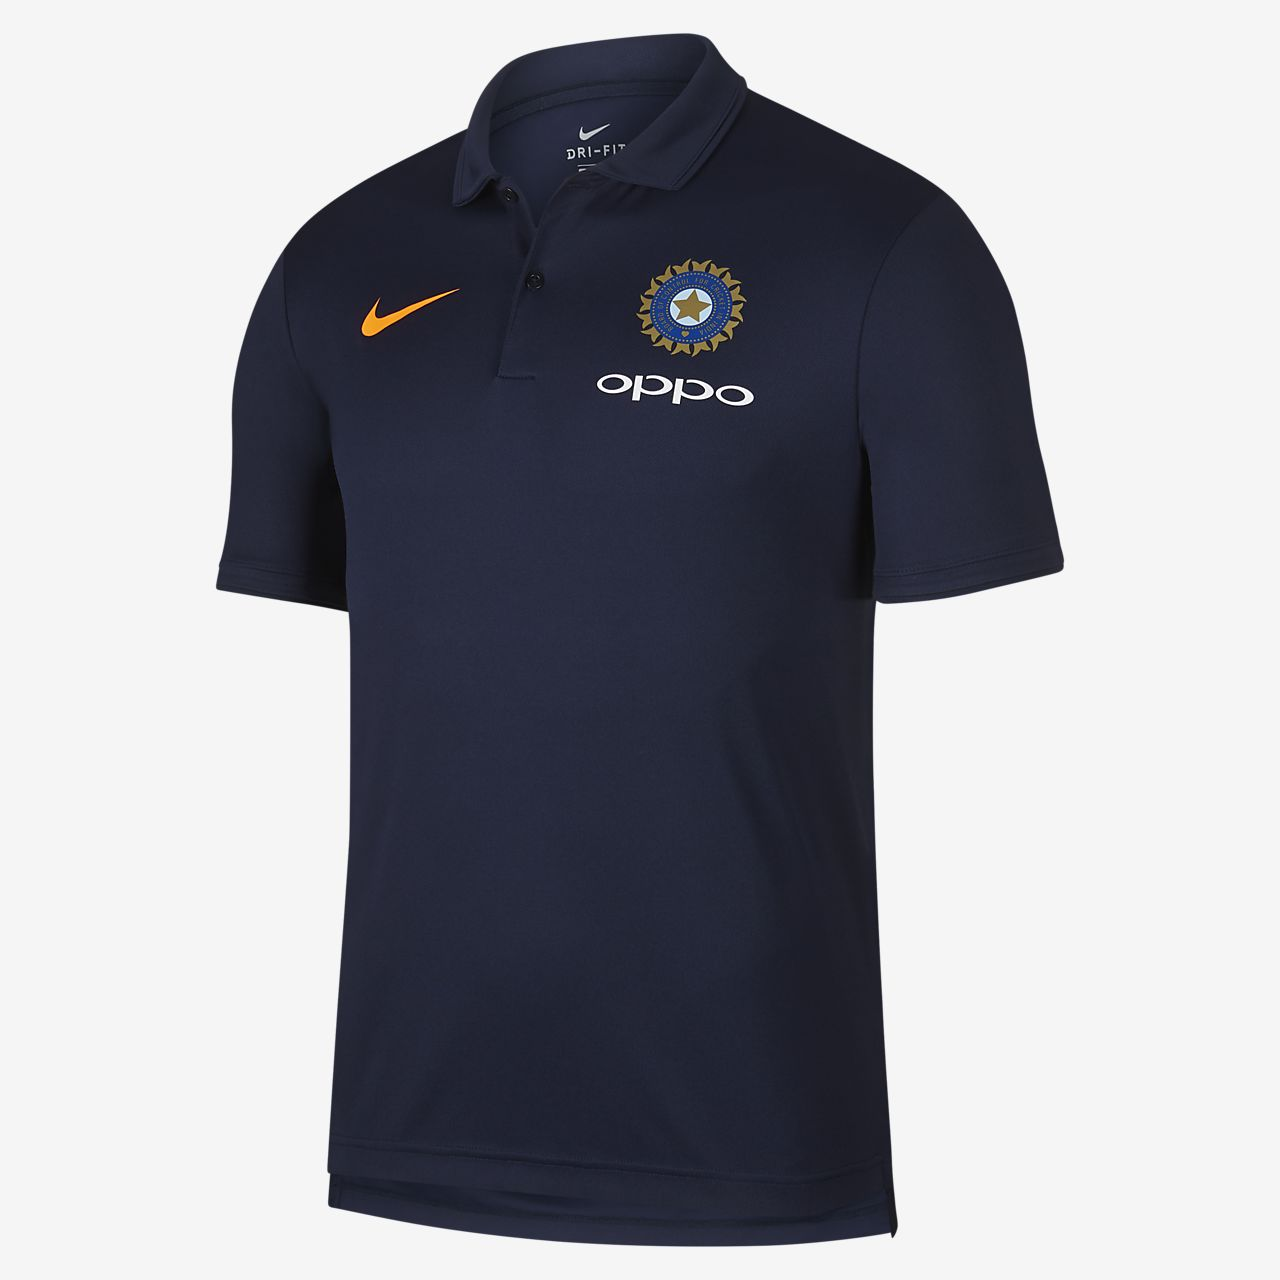 BCCI Dri-FIT Men's Cricket Polo